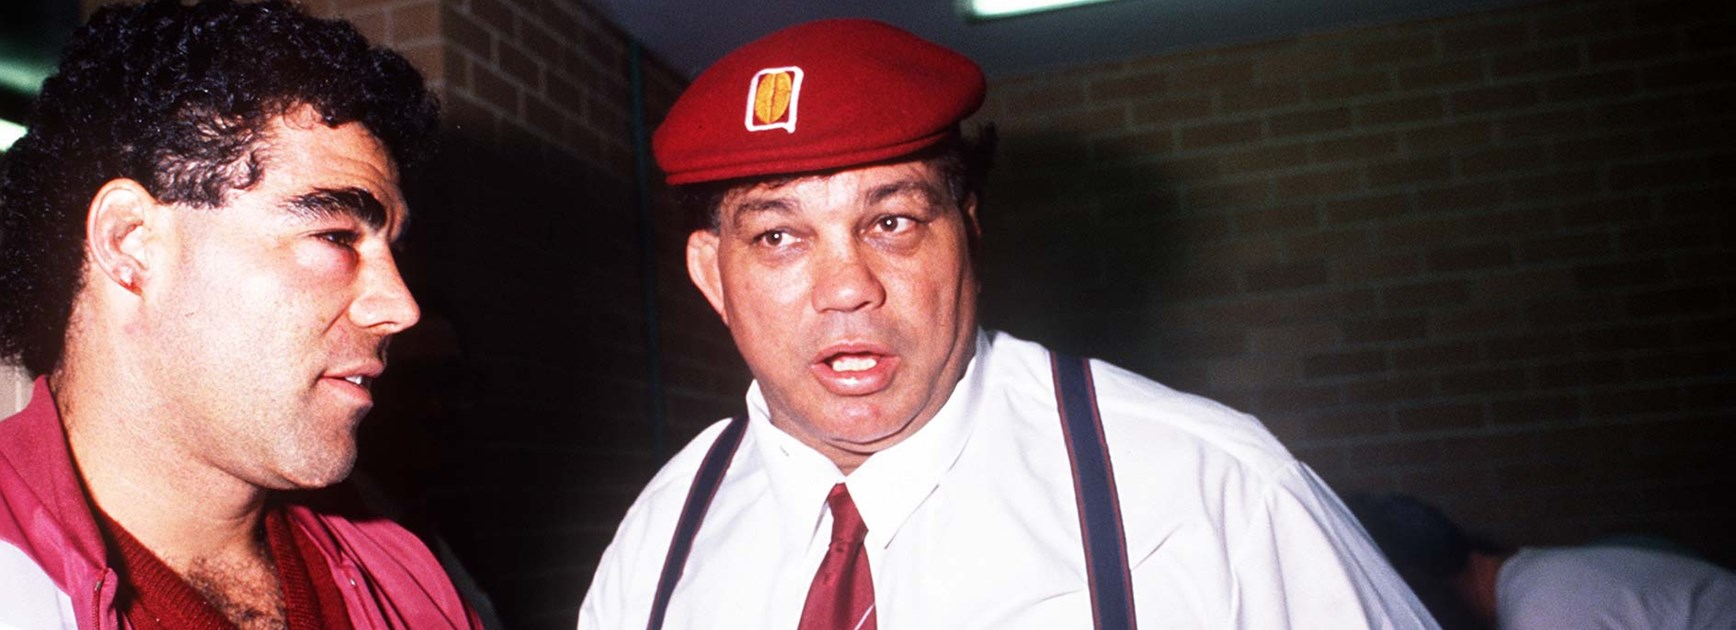 July 8: Origin is born as Artie leads Maroons to glory; Wolfman scores four